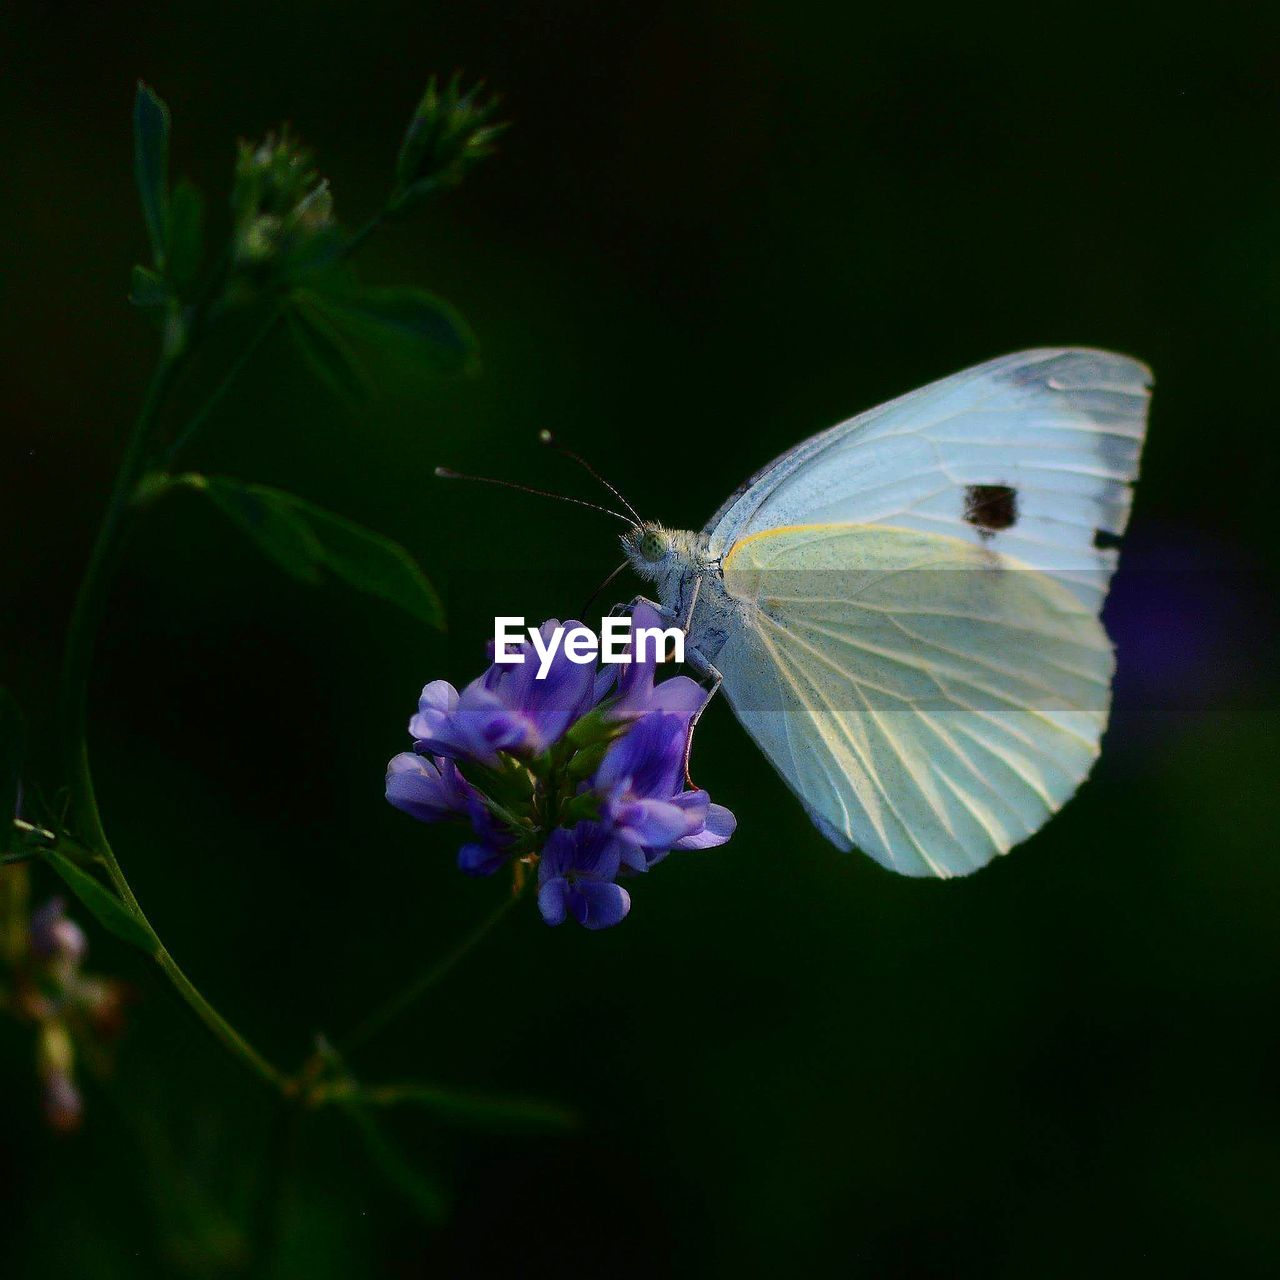 flower, flowering plant, beauty in nature, insect, plant, animal wing, fragility, invertebrate, animal themes, vulnerability, animal wildlife, one animal, animal, animals in the wild, freshness, petal, butterfly - insect, growth, flower head, nature, no people, purple, butterfly, pollination, outdoors